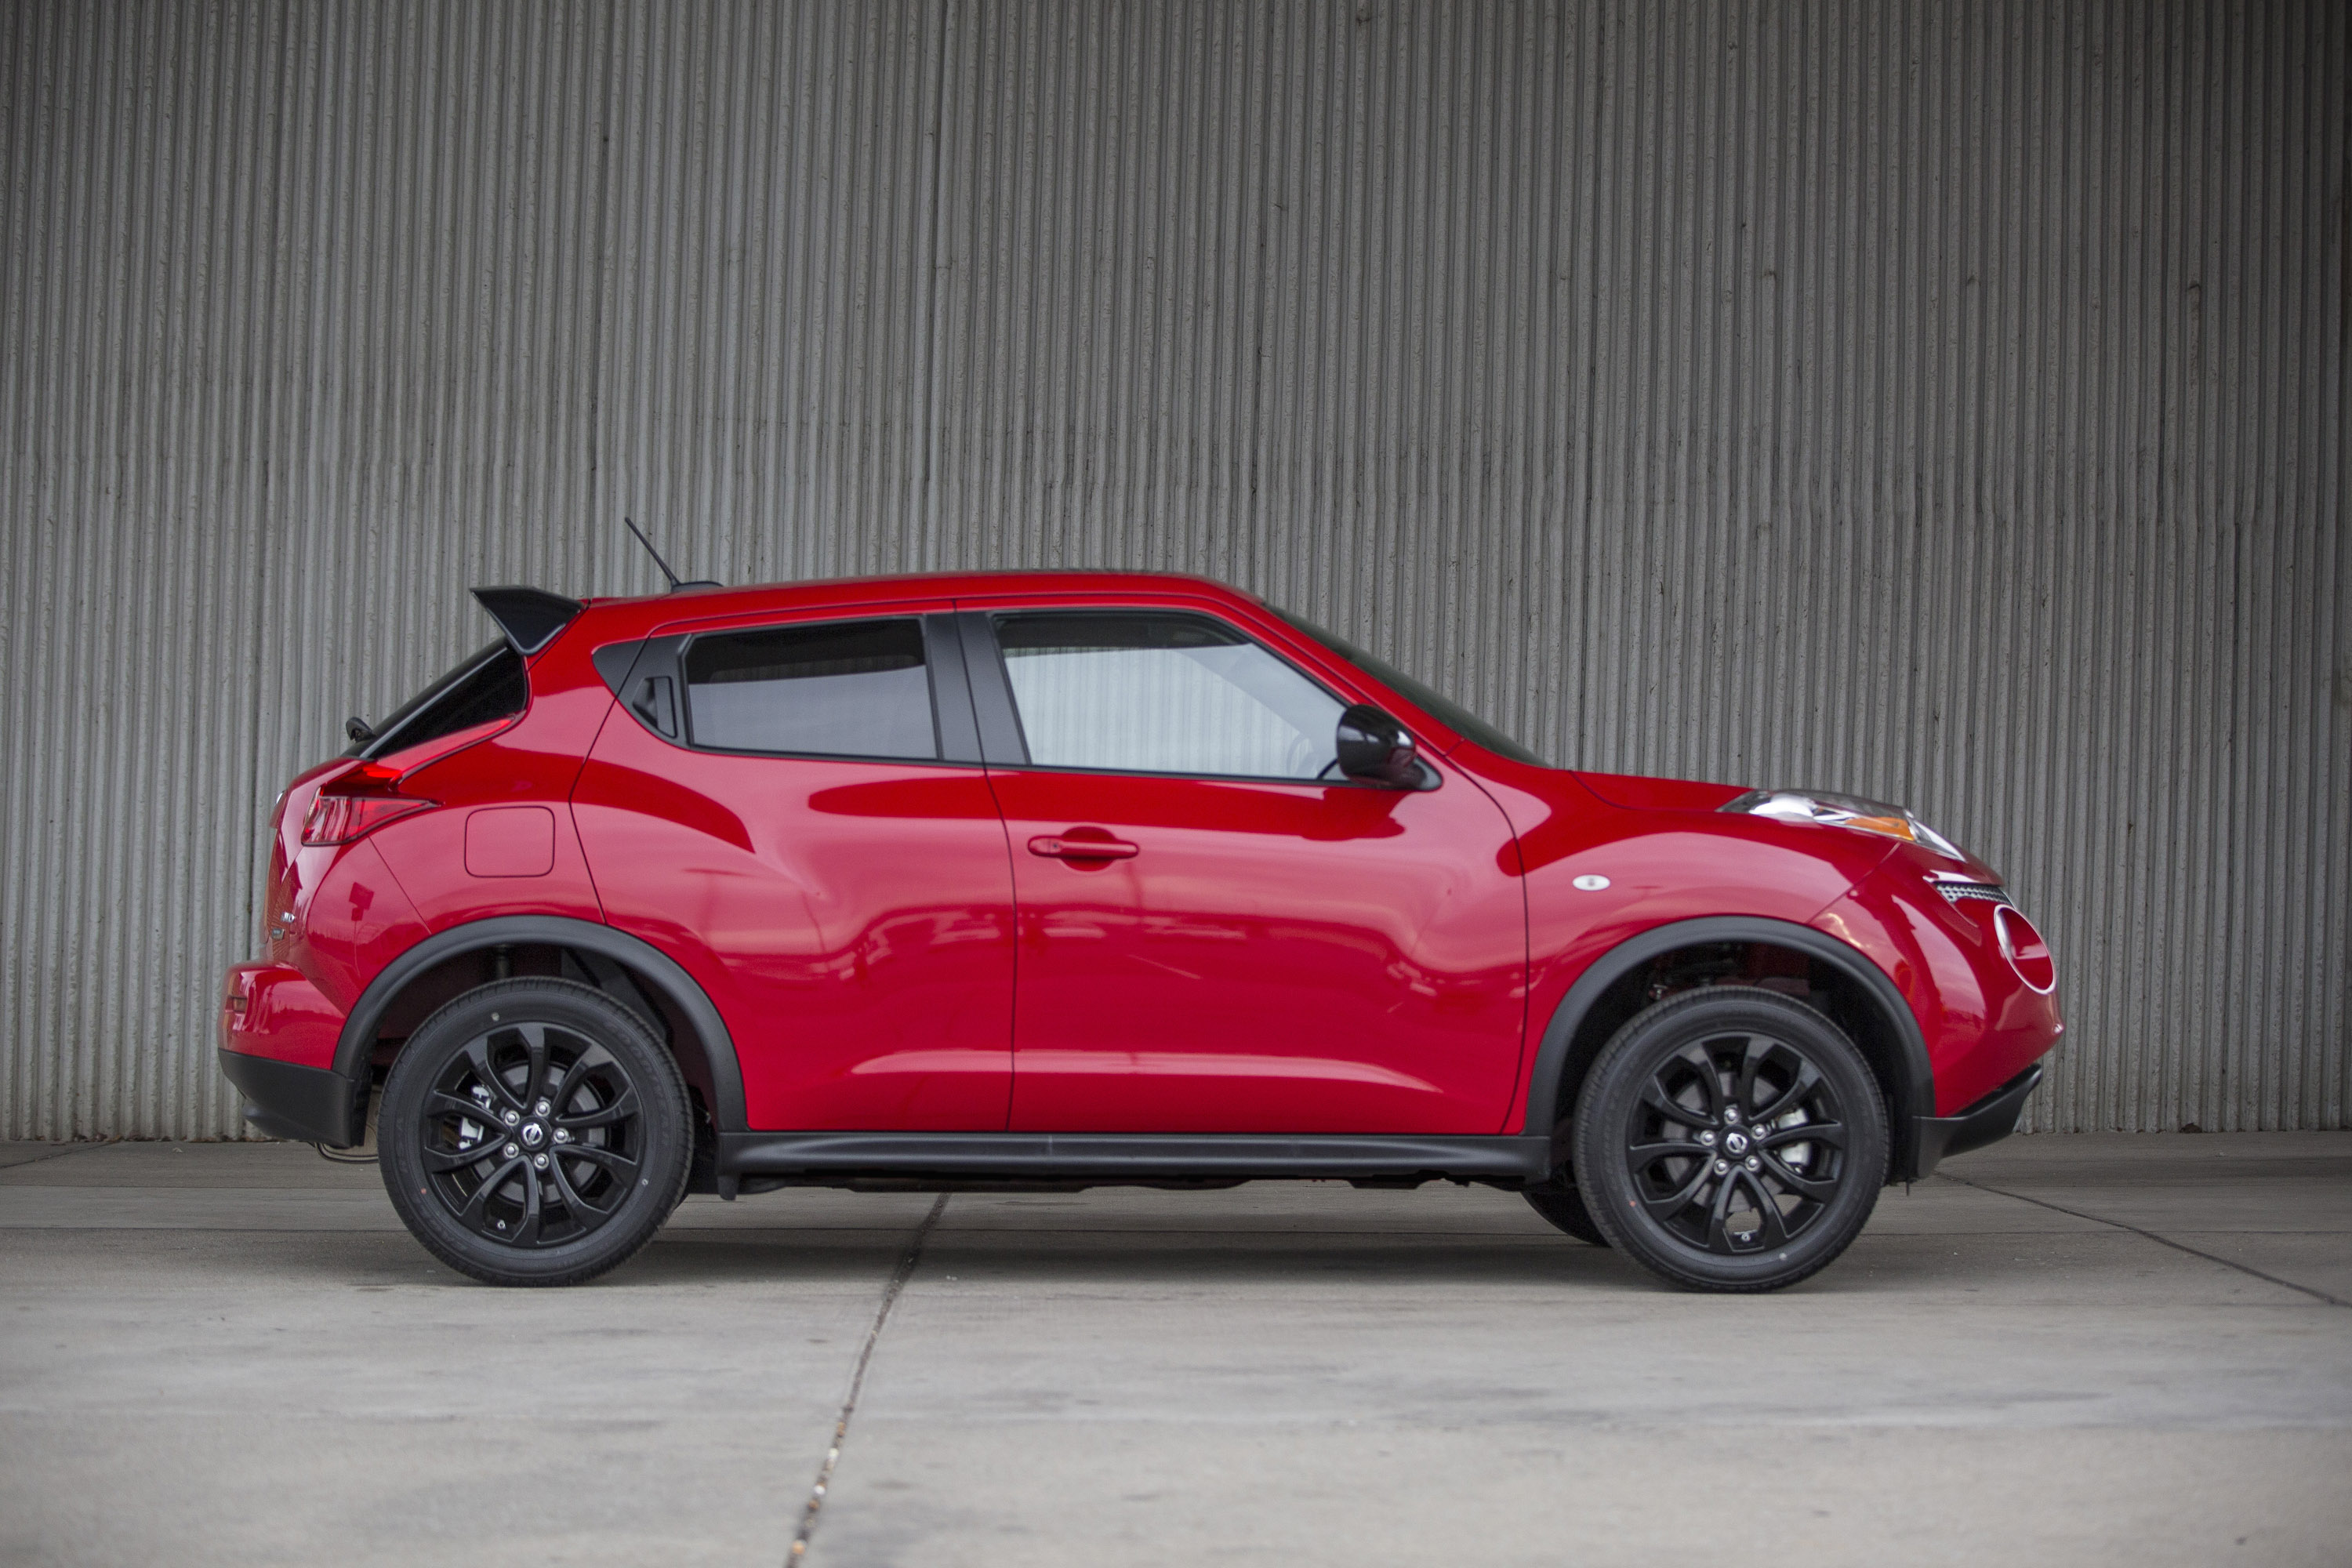 2014 nissan juke full details. Black Bedroom Furniture Sets. Home Design Ideas